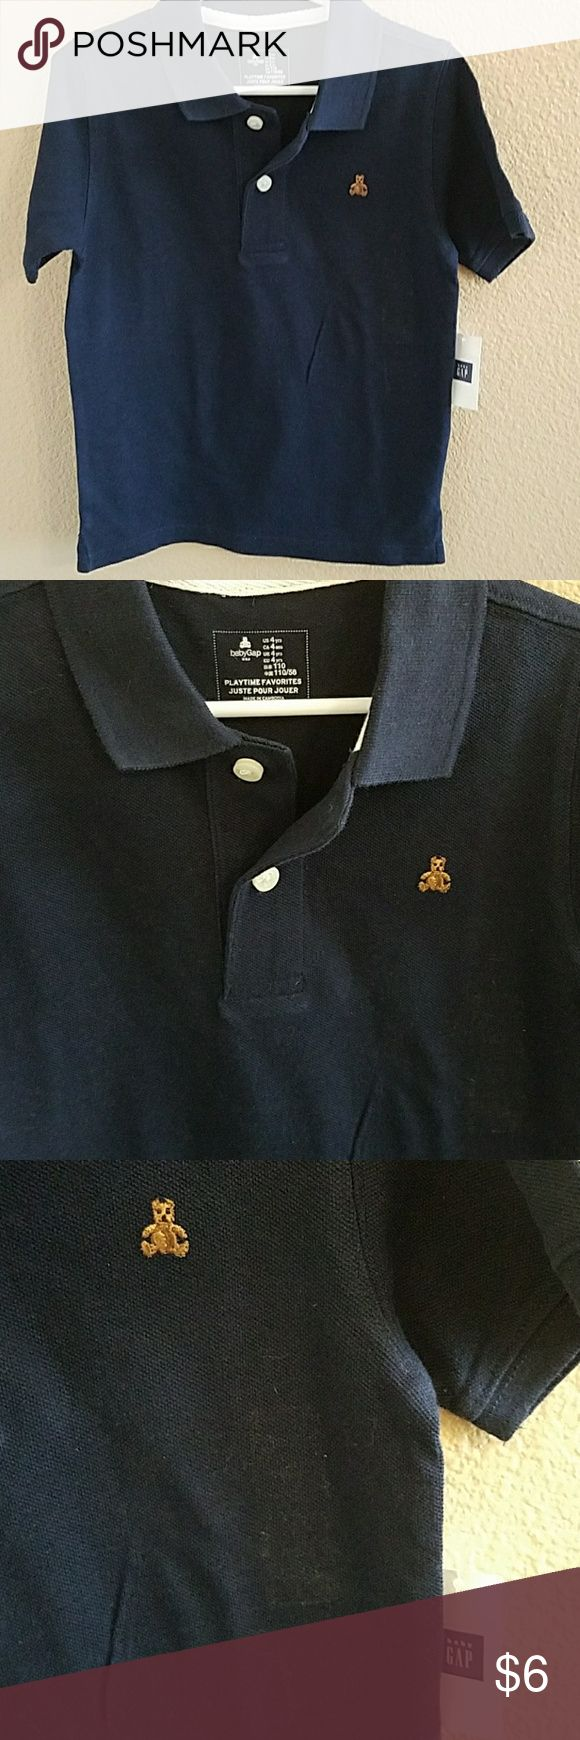 Gap NWT Navy Blue Boys  Polo Size 4 Classic Gap Navy Blue Polo Shirt size 4 NWT Please Note the 3rd Pic is showing some residue from the size sticker GAP Shirts & Tops Polos